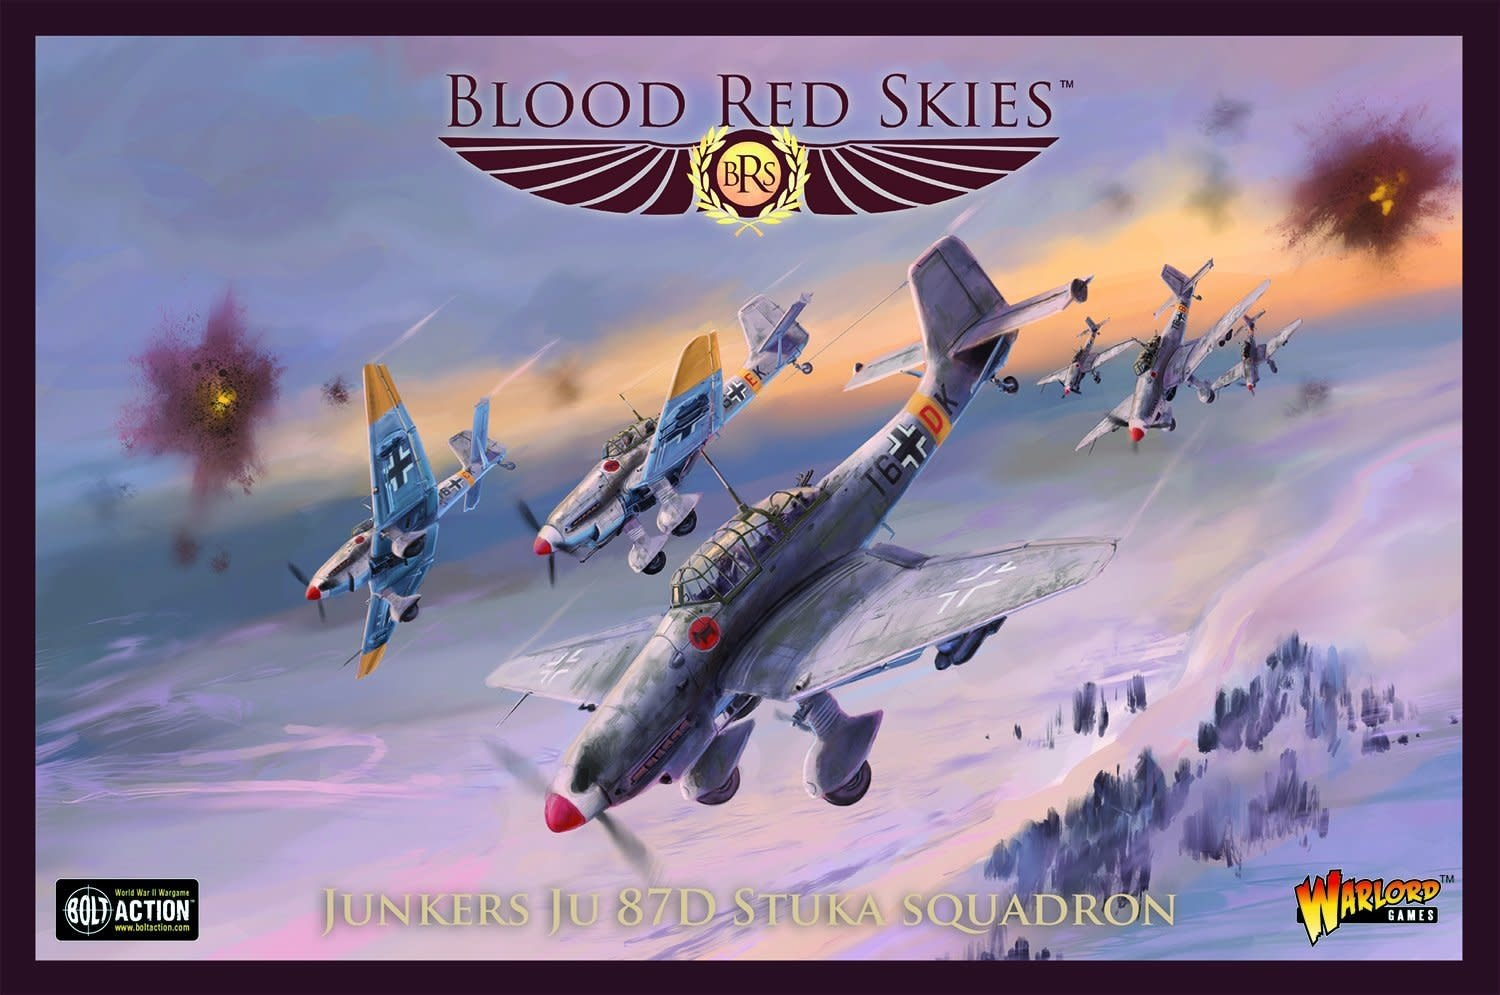 Warlord games Blood Red Skies: German- Junkers JU 87D Stuka Squad